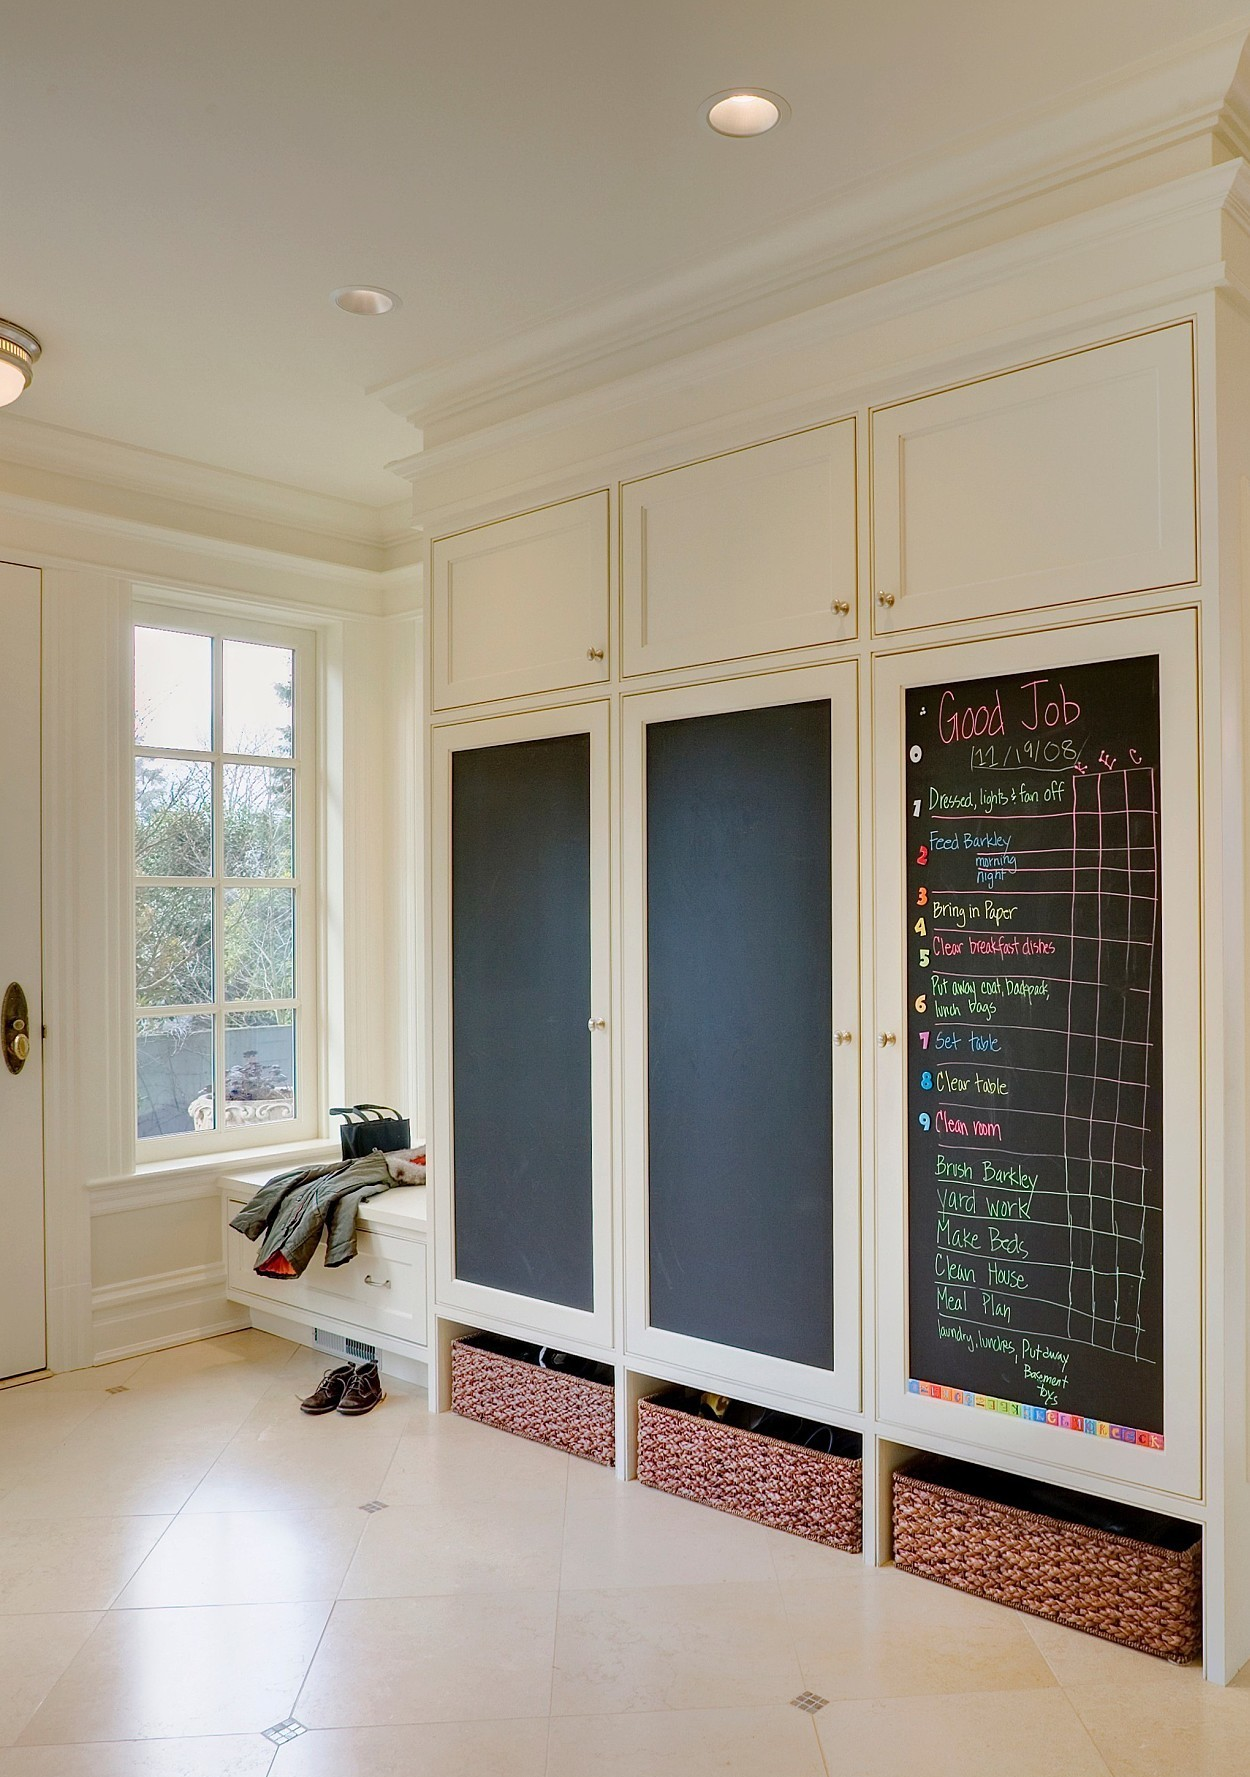 8 Fun And Functional Mudroom Ideas For A Super Organized